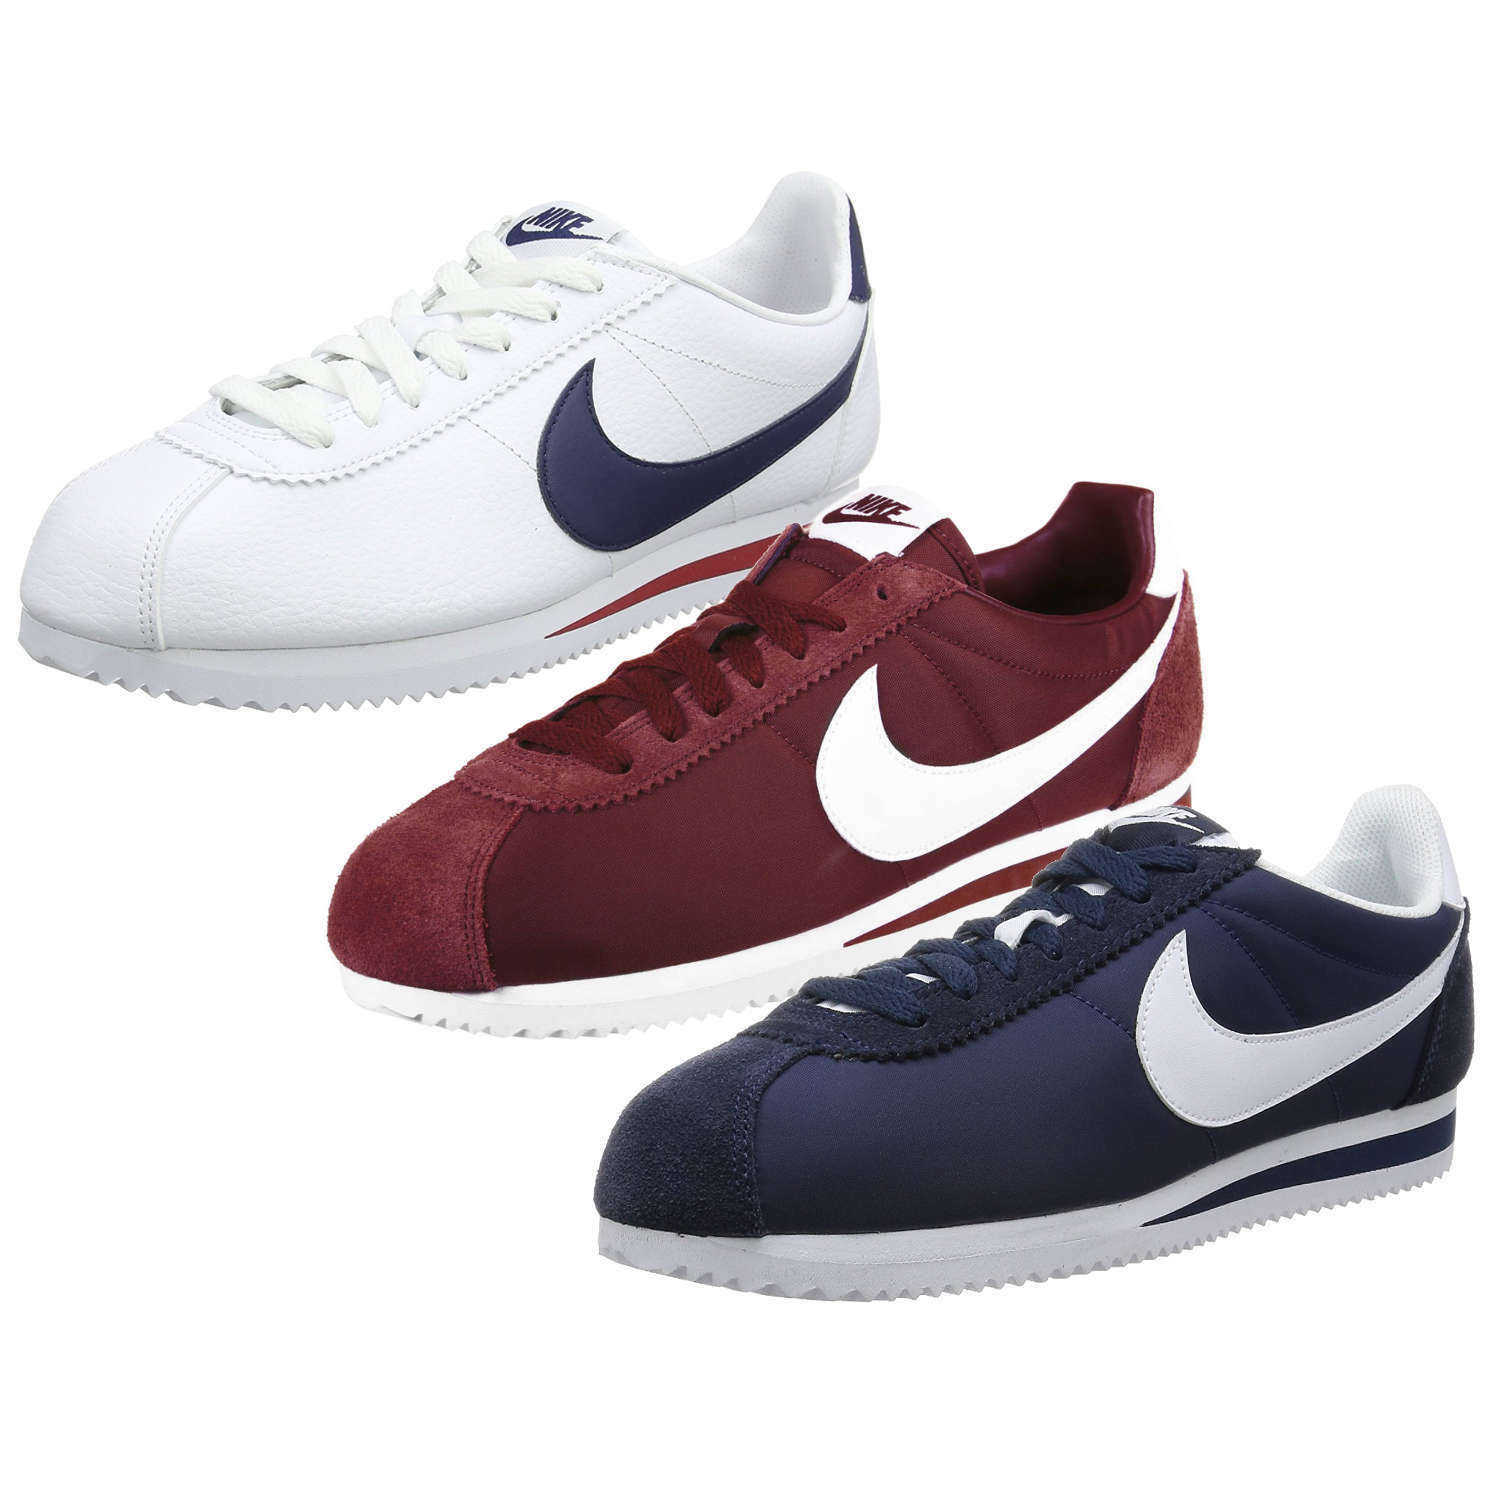 NIKE CLASSIC CORTEZ NYLON / LEATHER Uomo SNEAKERS TRAINERS SPORT Scarpe NEW